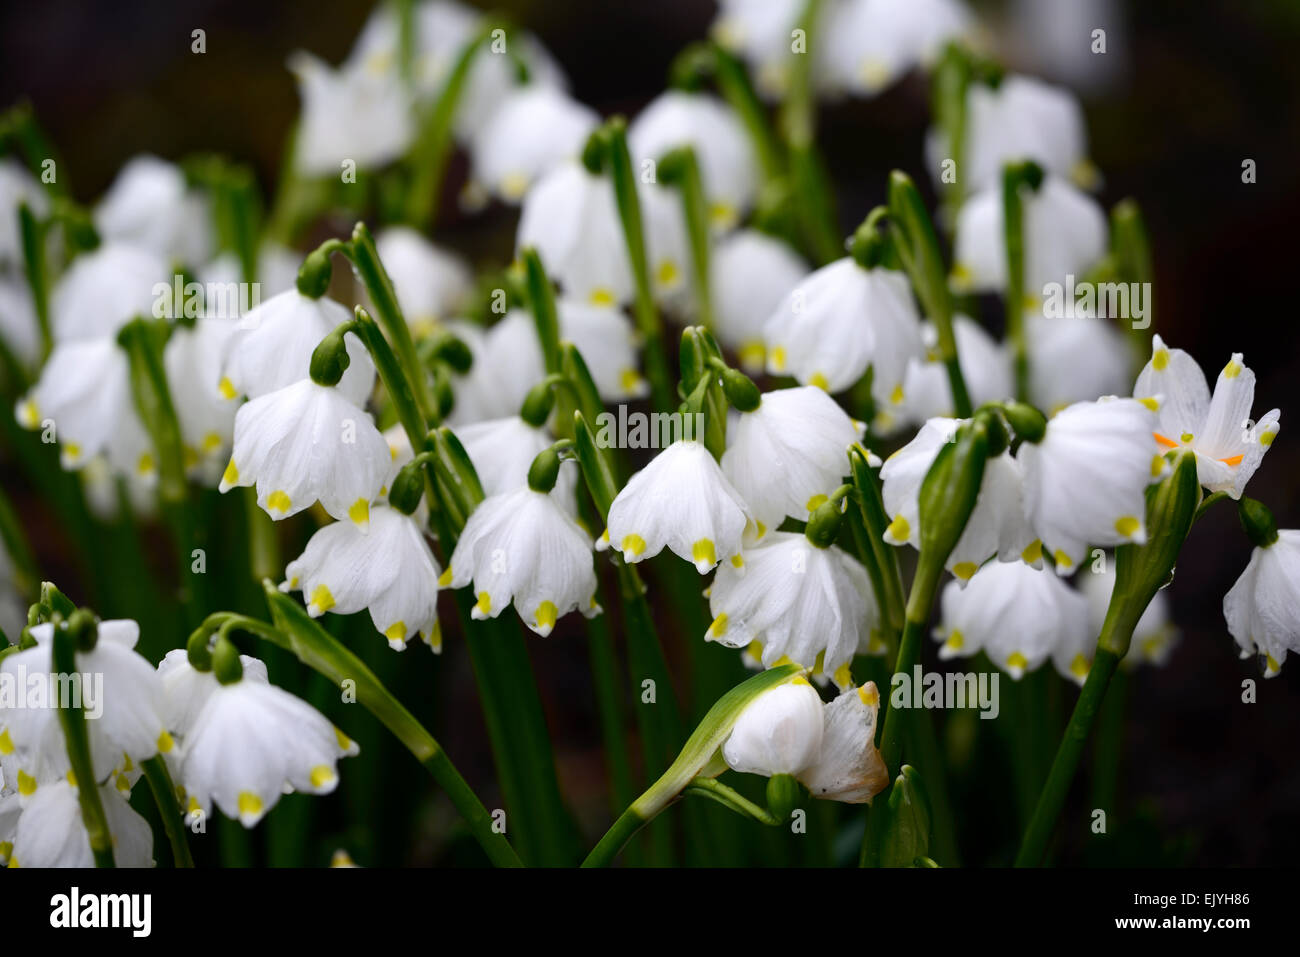 Spring snowflake flowers stock photos spring snowflake flowers leucojum vernum spring snowflake flowers flower clump forming white bloom blossom bell shaped shape rm floral mightylinksfo